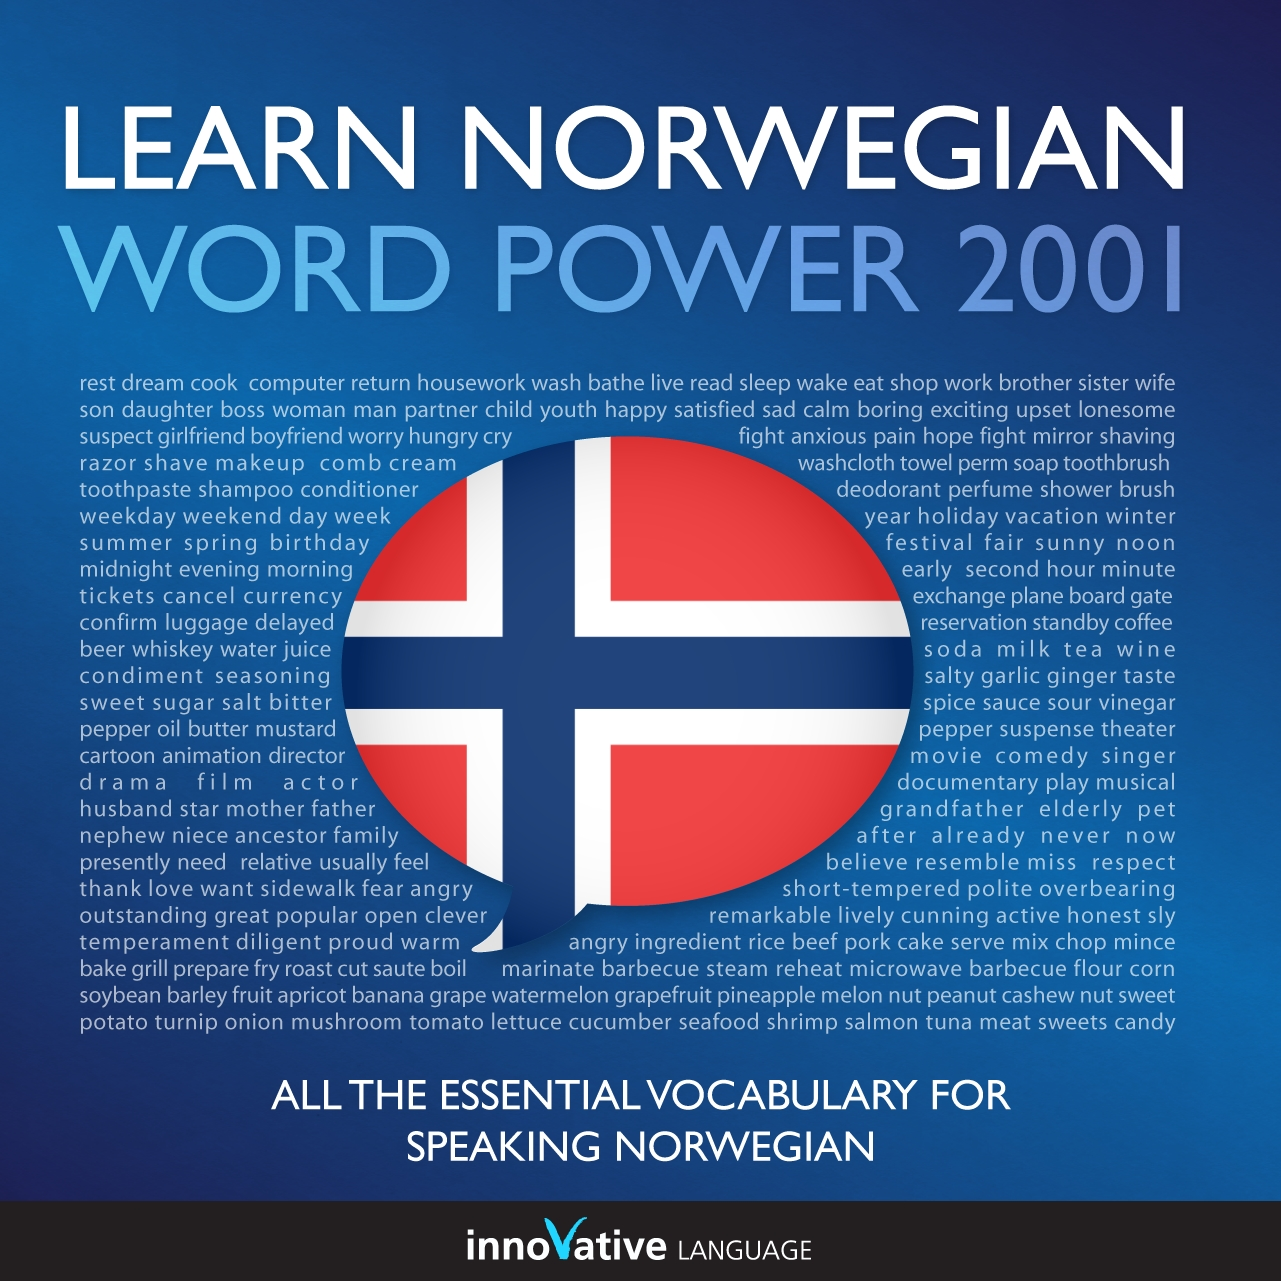 Learn Norwegian - Word Power 2001